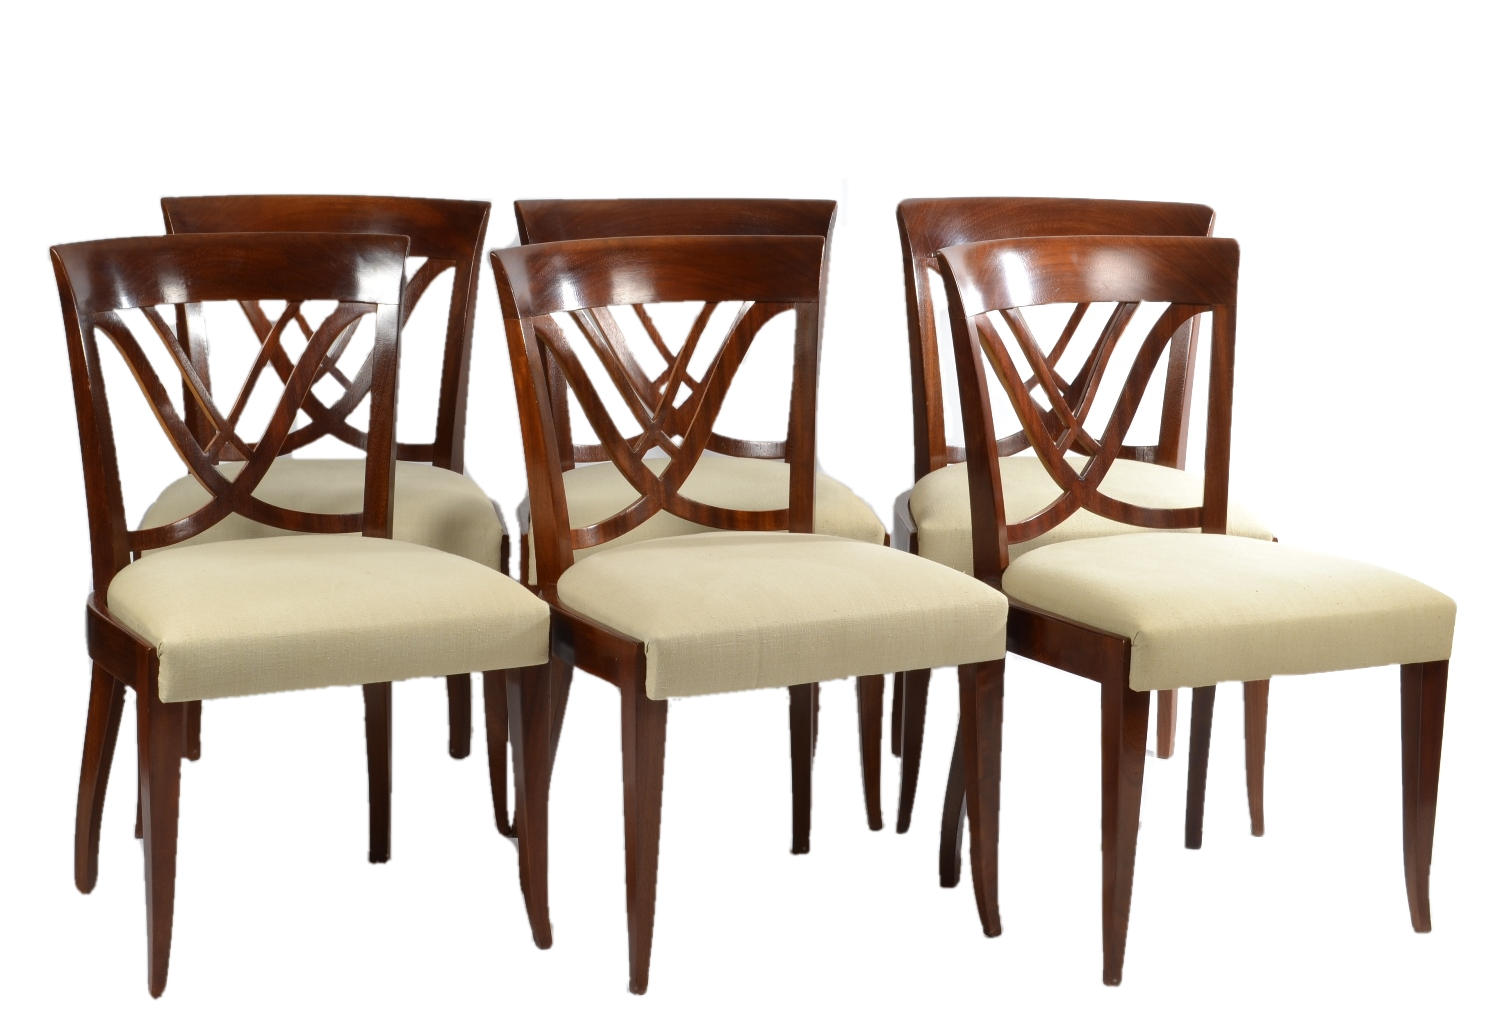 Fresh Robert Morrissey Antiques: Set of Six Art Deco Dining Chairs OR12